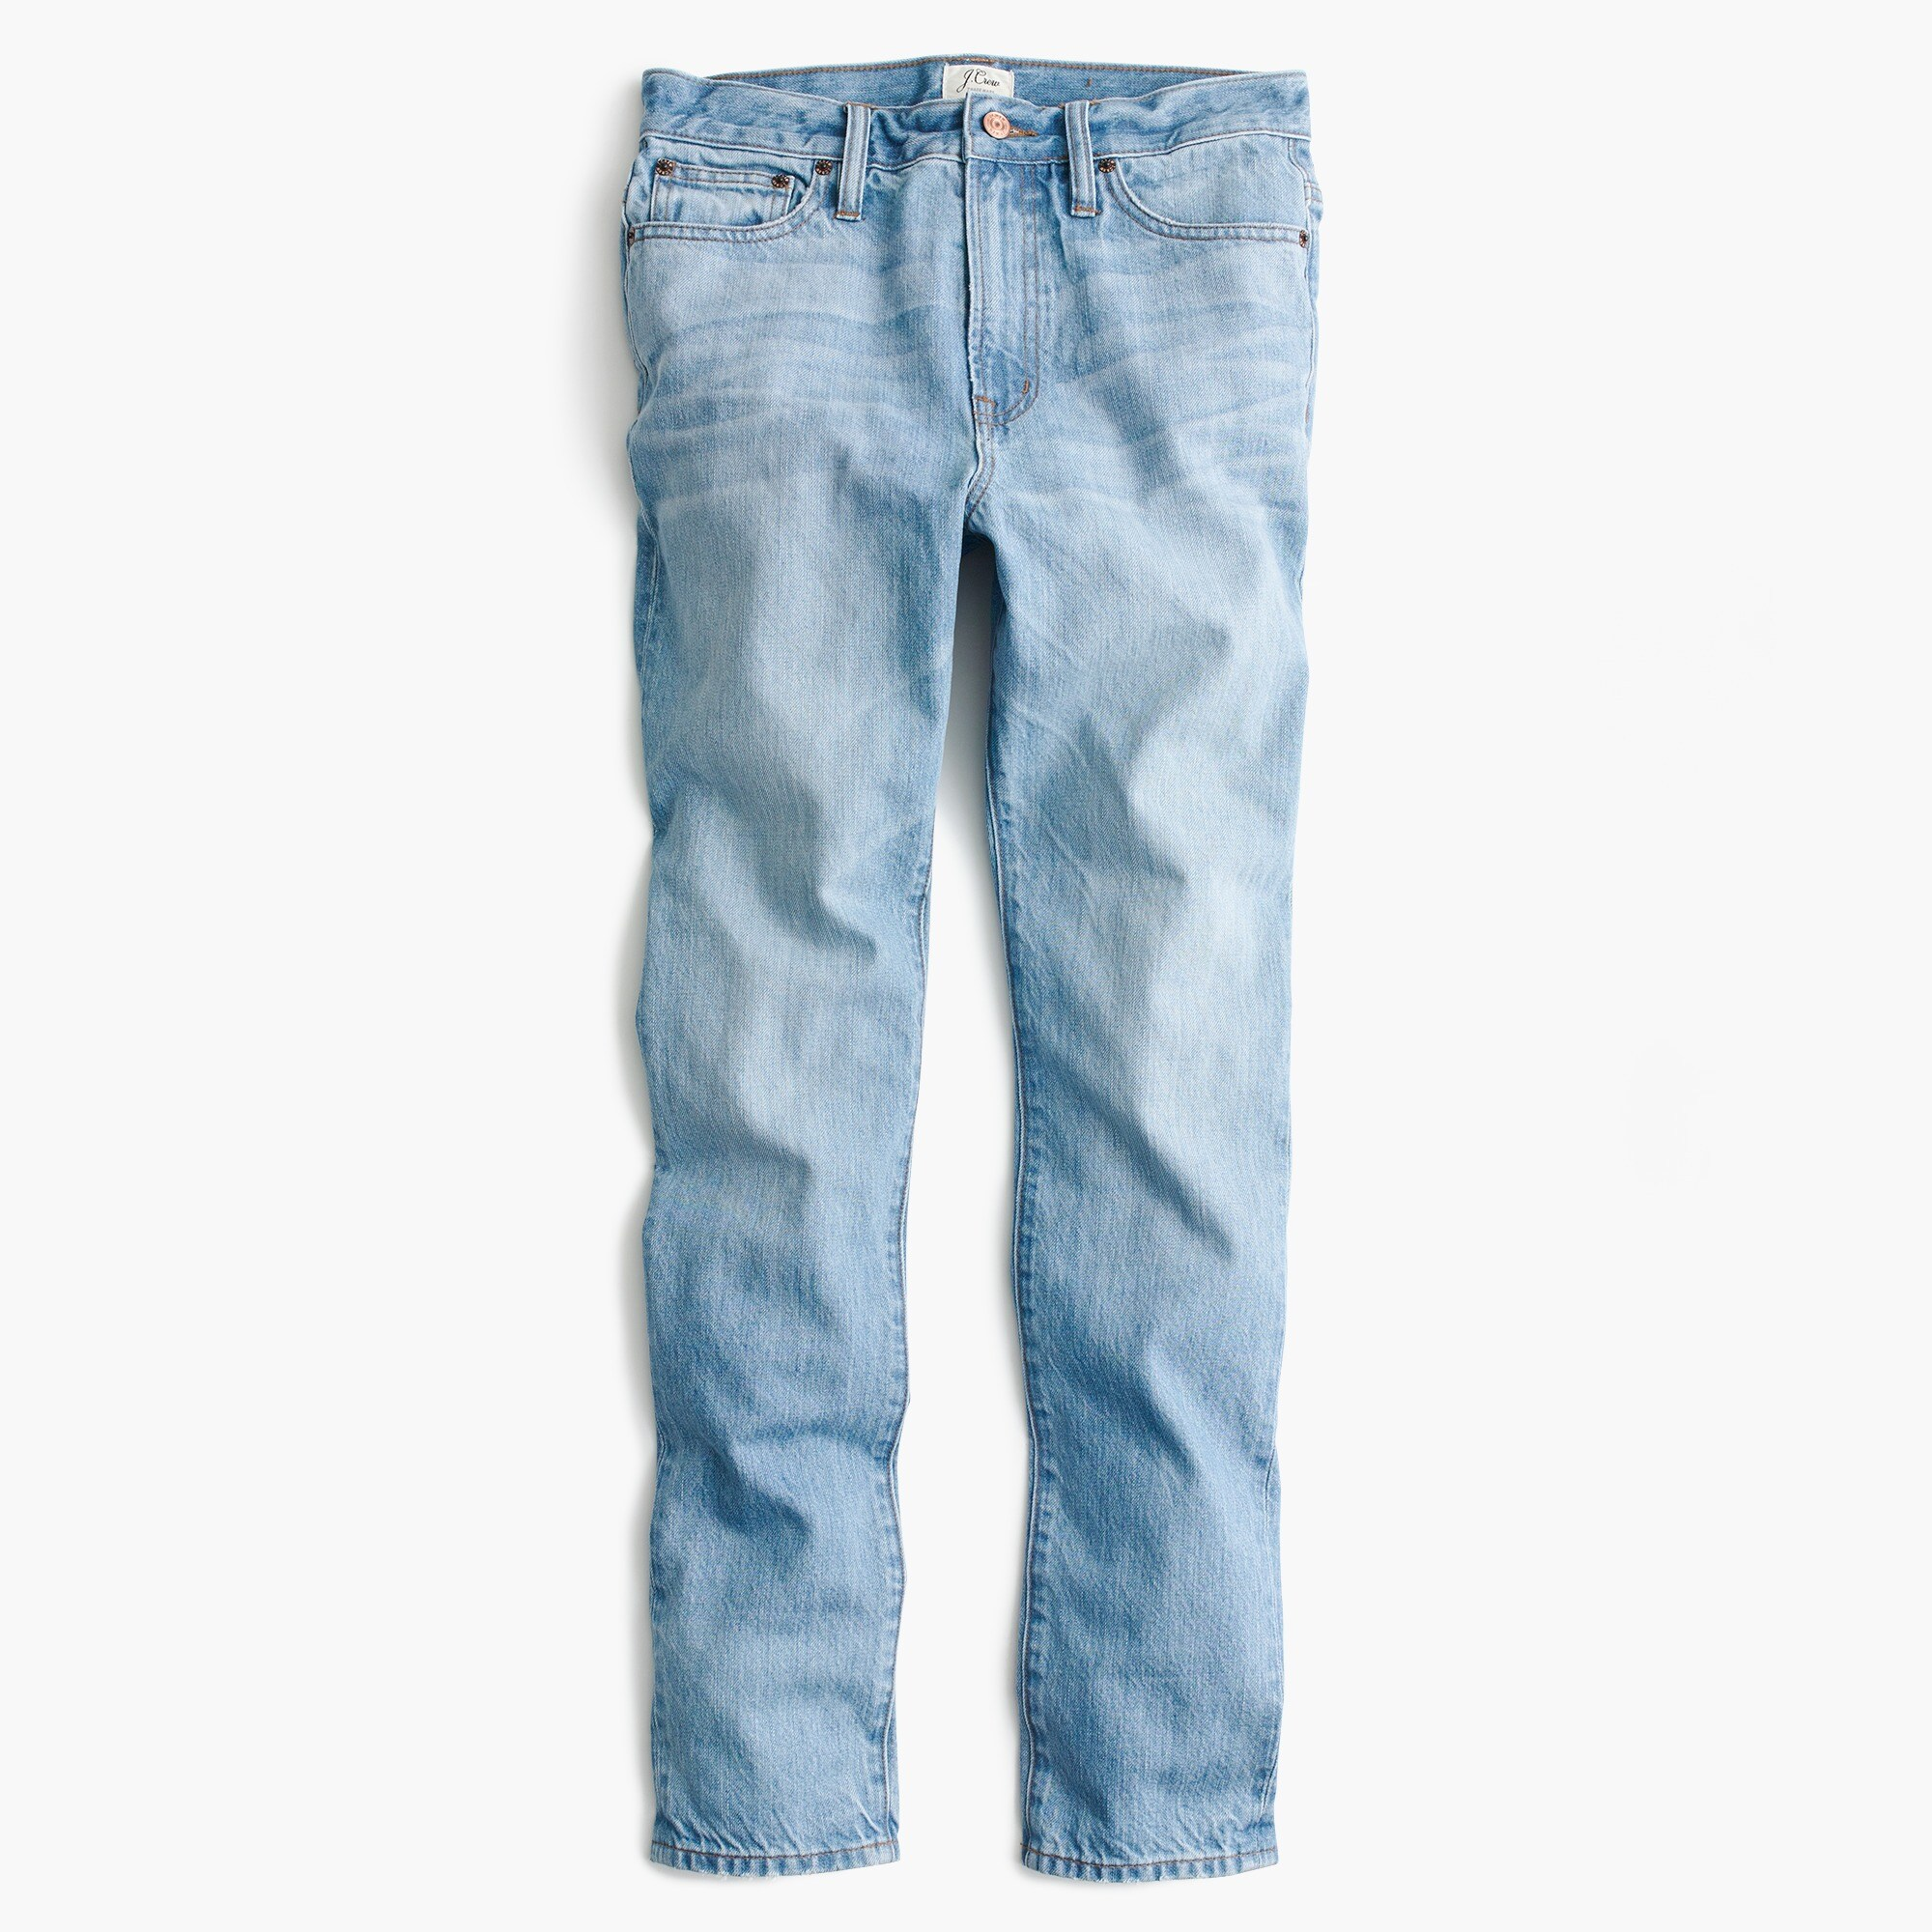 Image 2 for Tall Point Sur high-rise retro straight jean